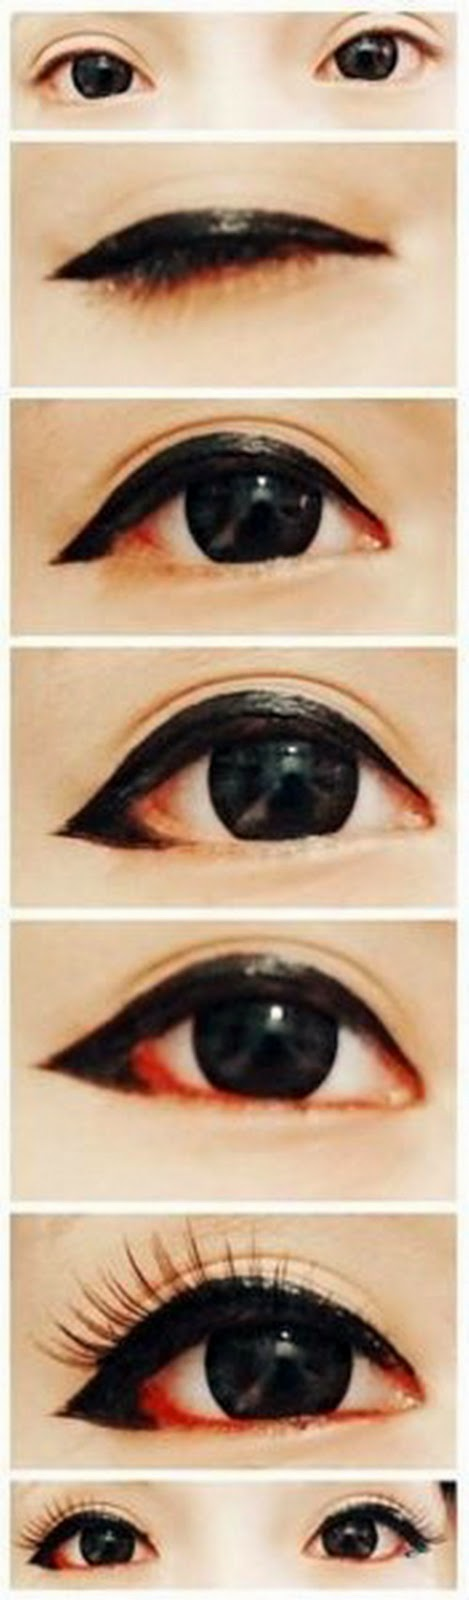 puppy-eyes-asian-makeup-tutorials